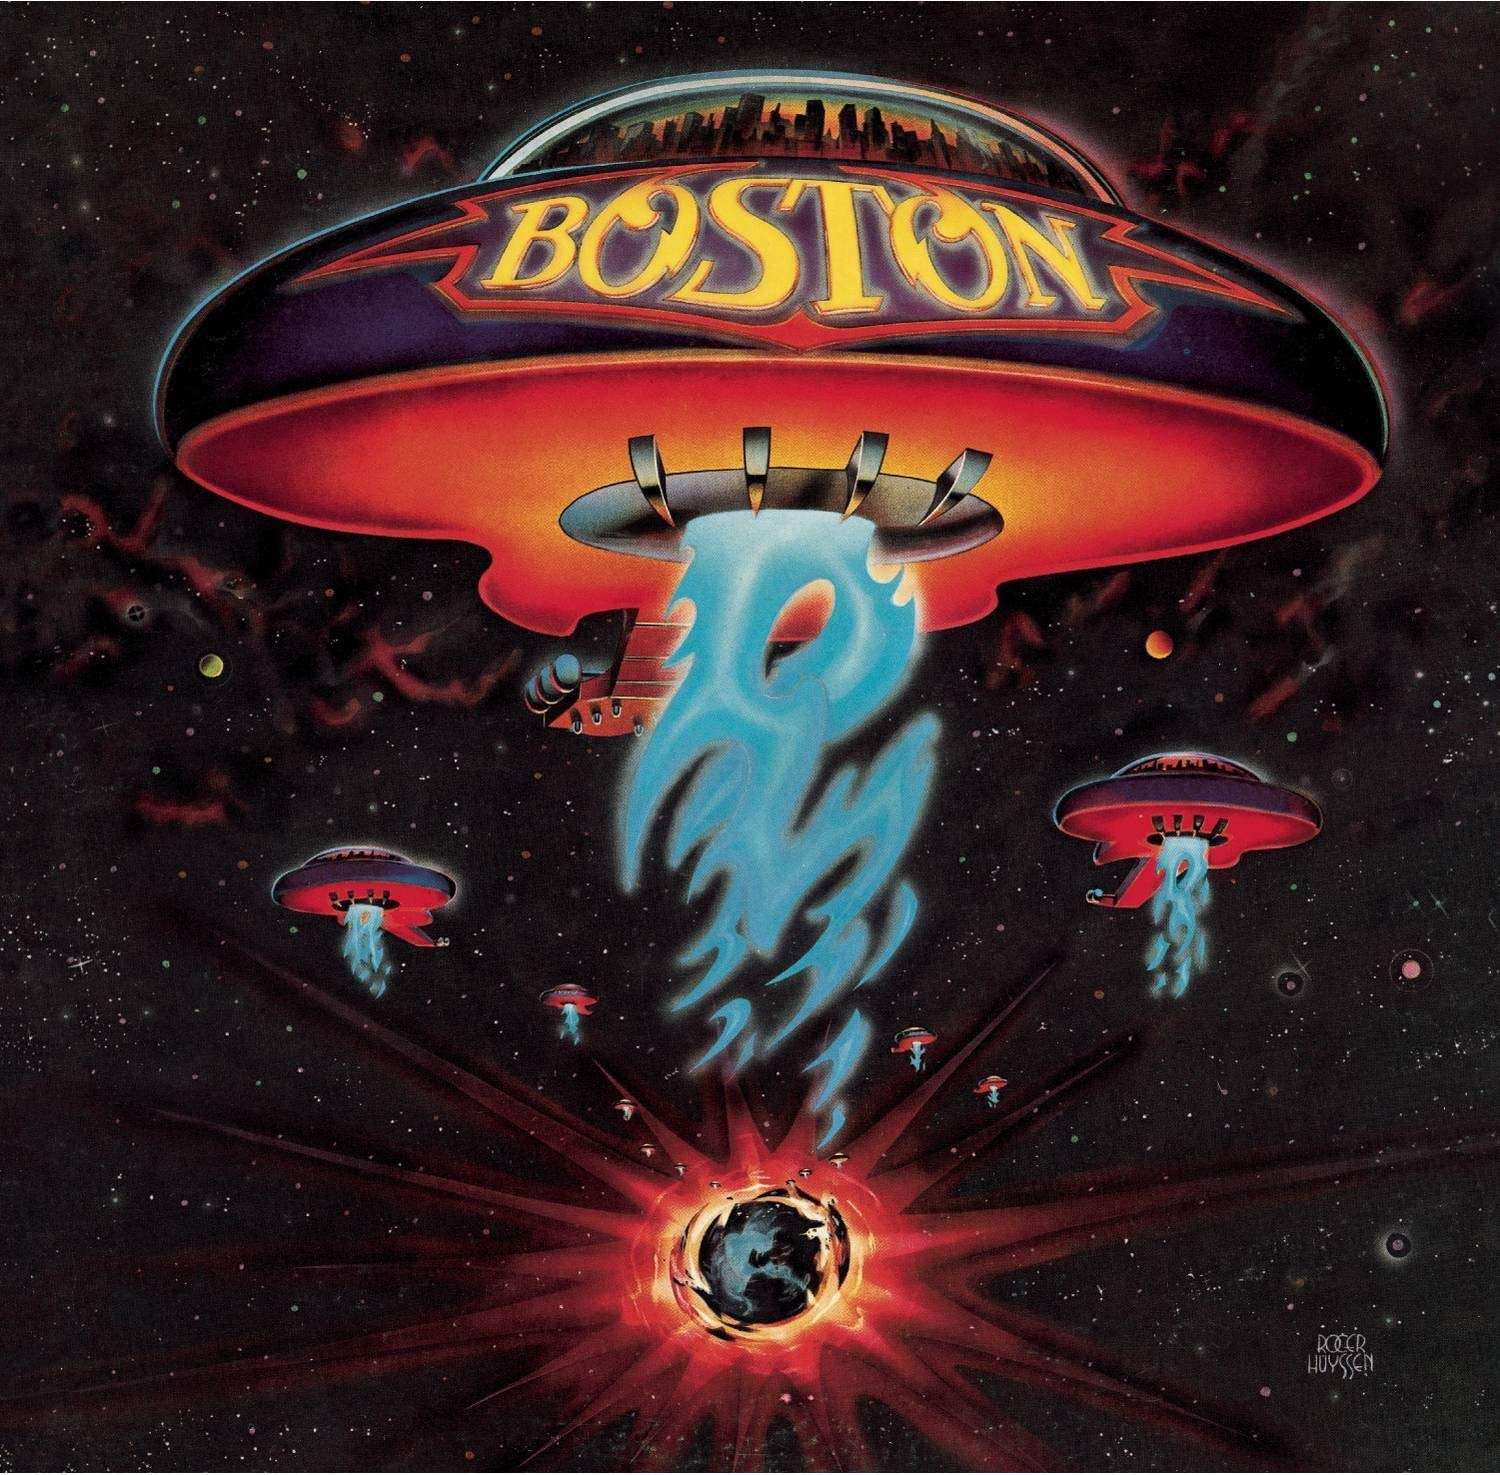 50 Years, 50 Albums 1976: Boston